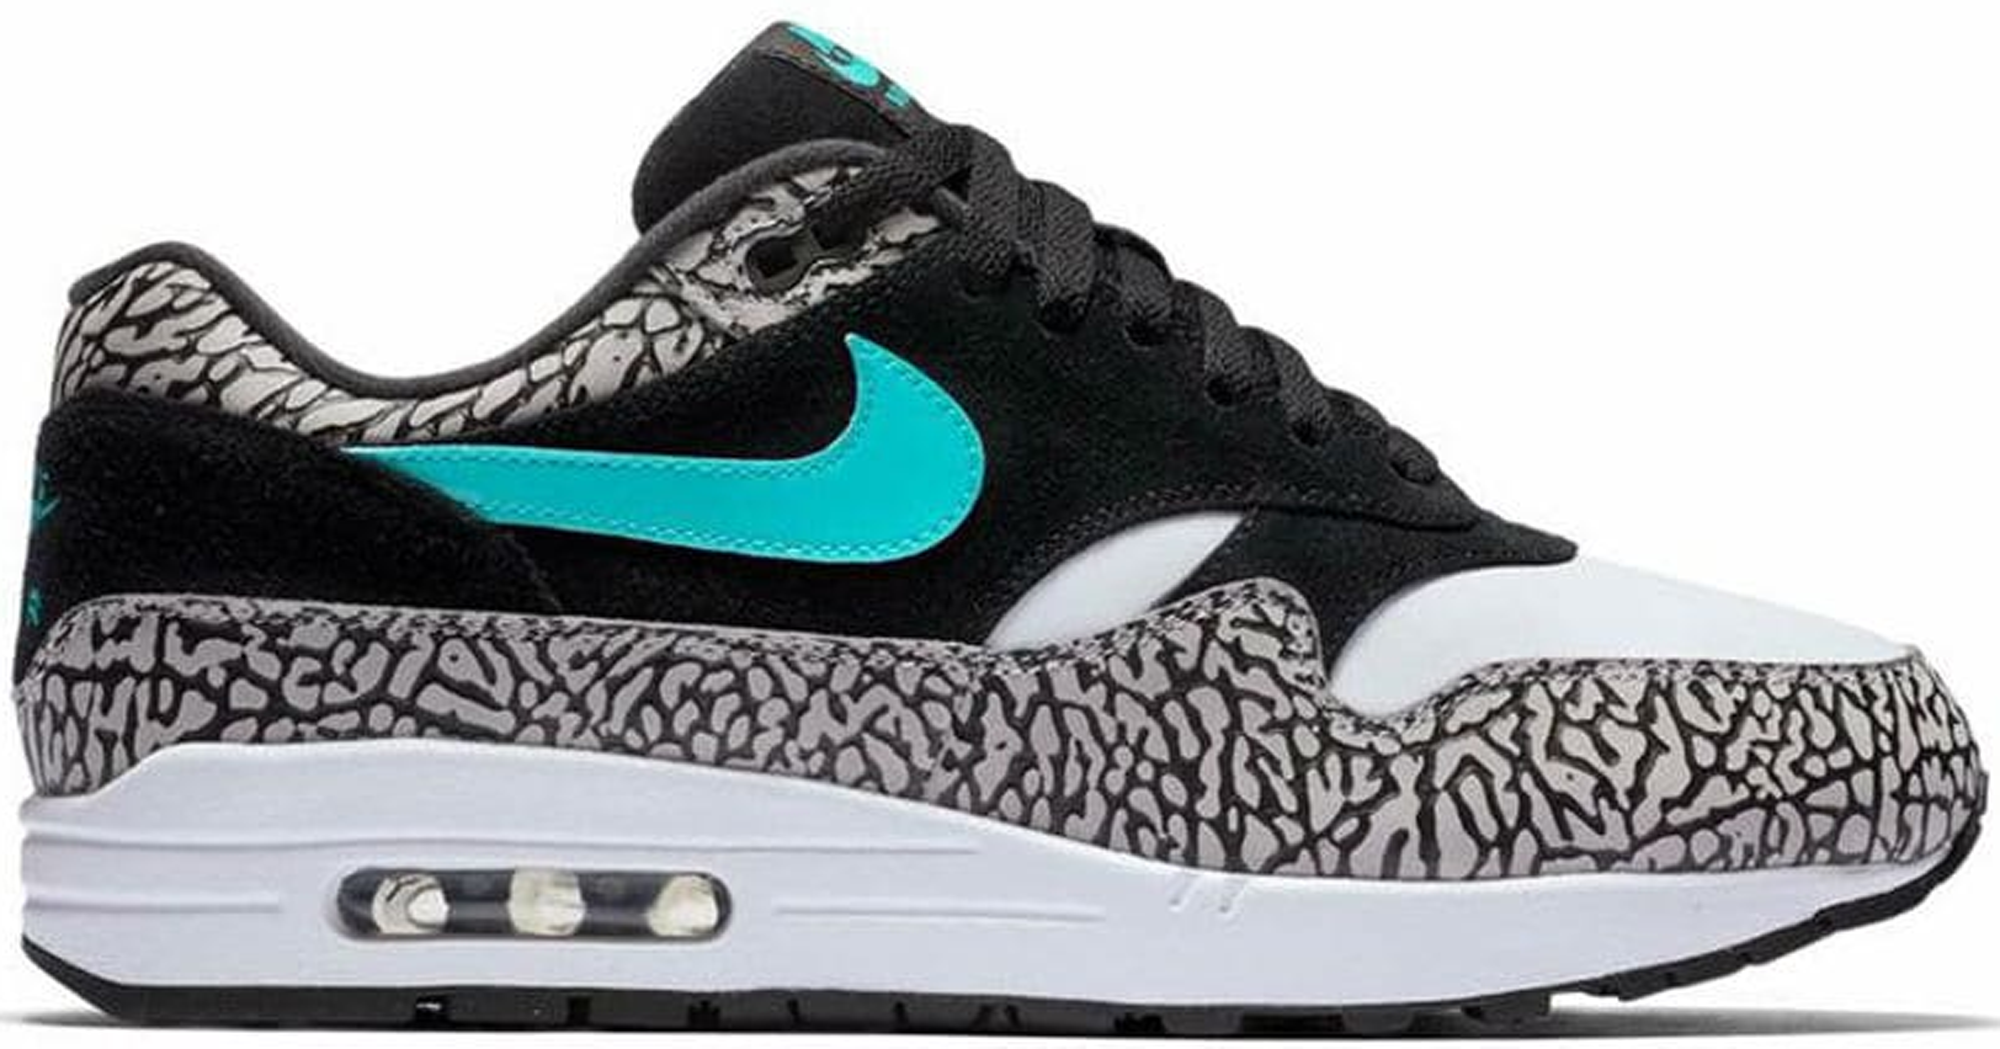 nike air max 1 atmos elephant 2017. Black Bedroom Furniture Sets. Home Design Ideas